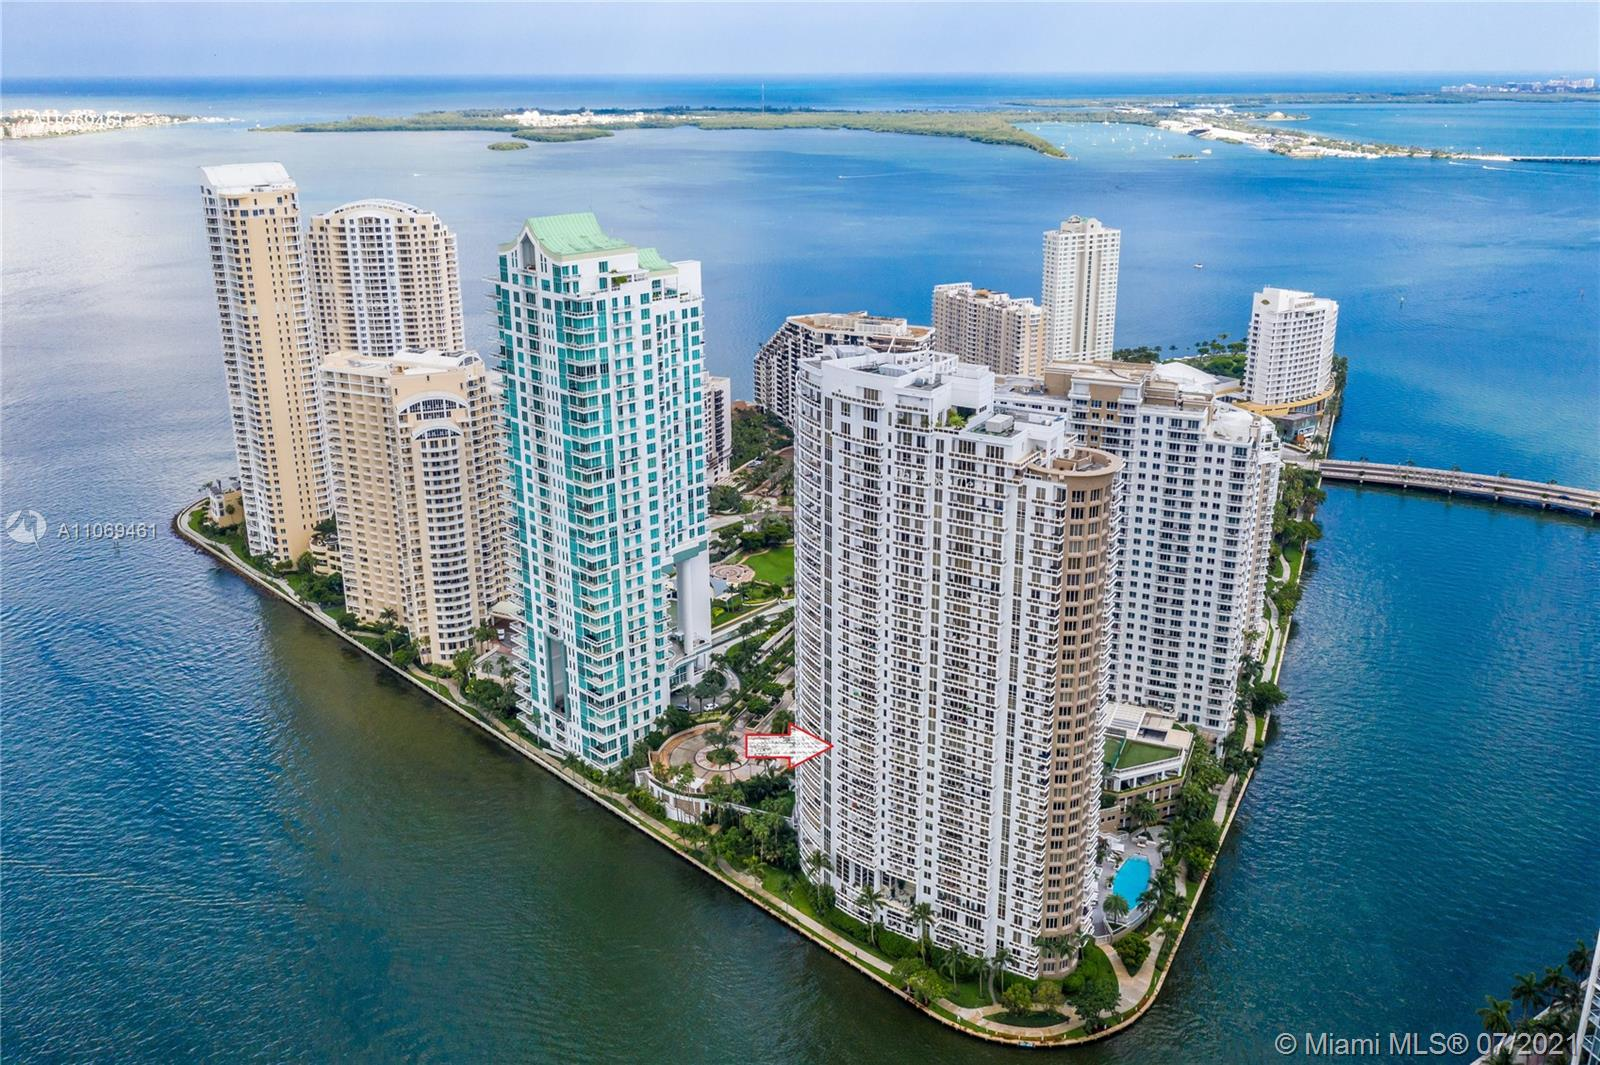 Fantastic opportunity! Amazing water views! This great unit has a spectacular unobstructed water view from every single room. 3 beds and 2.5 baths of luxury. Marble and wood floors. Great balcony high ceilings, 2 assigned SIDE-BY-SIDE PARKING SPACES! The elegant Carbonell building located on the private island of Brickell Key is within walking distance to downtown Brickell, Mary Brickell Village, Brickell City Center, and the Bayside Marketplace Place. Enjoy building amenities: concierge service, 24hr security, tennis courts, gym, racquetball courts more!! Easy to show!